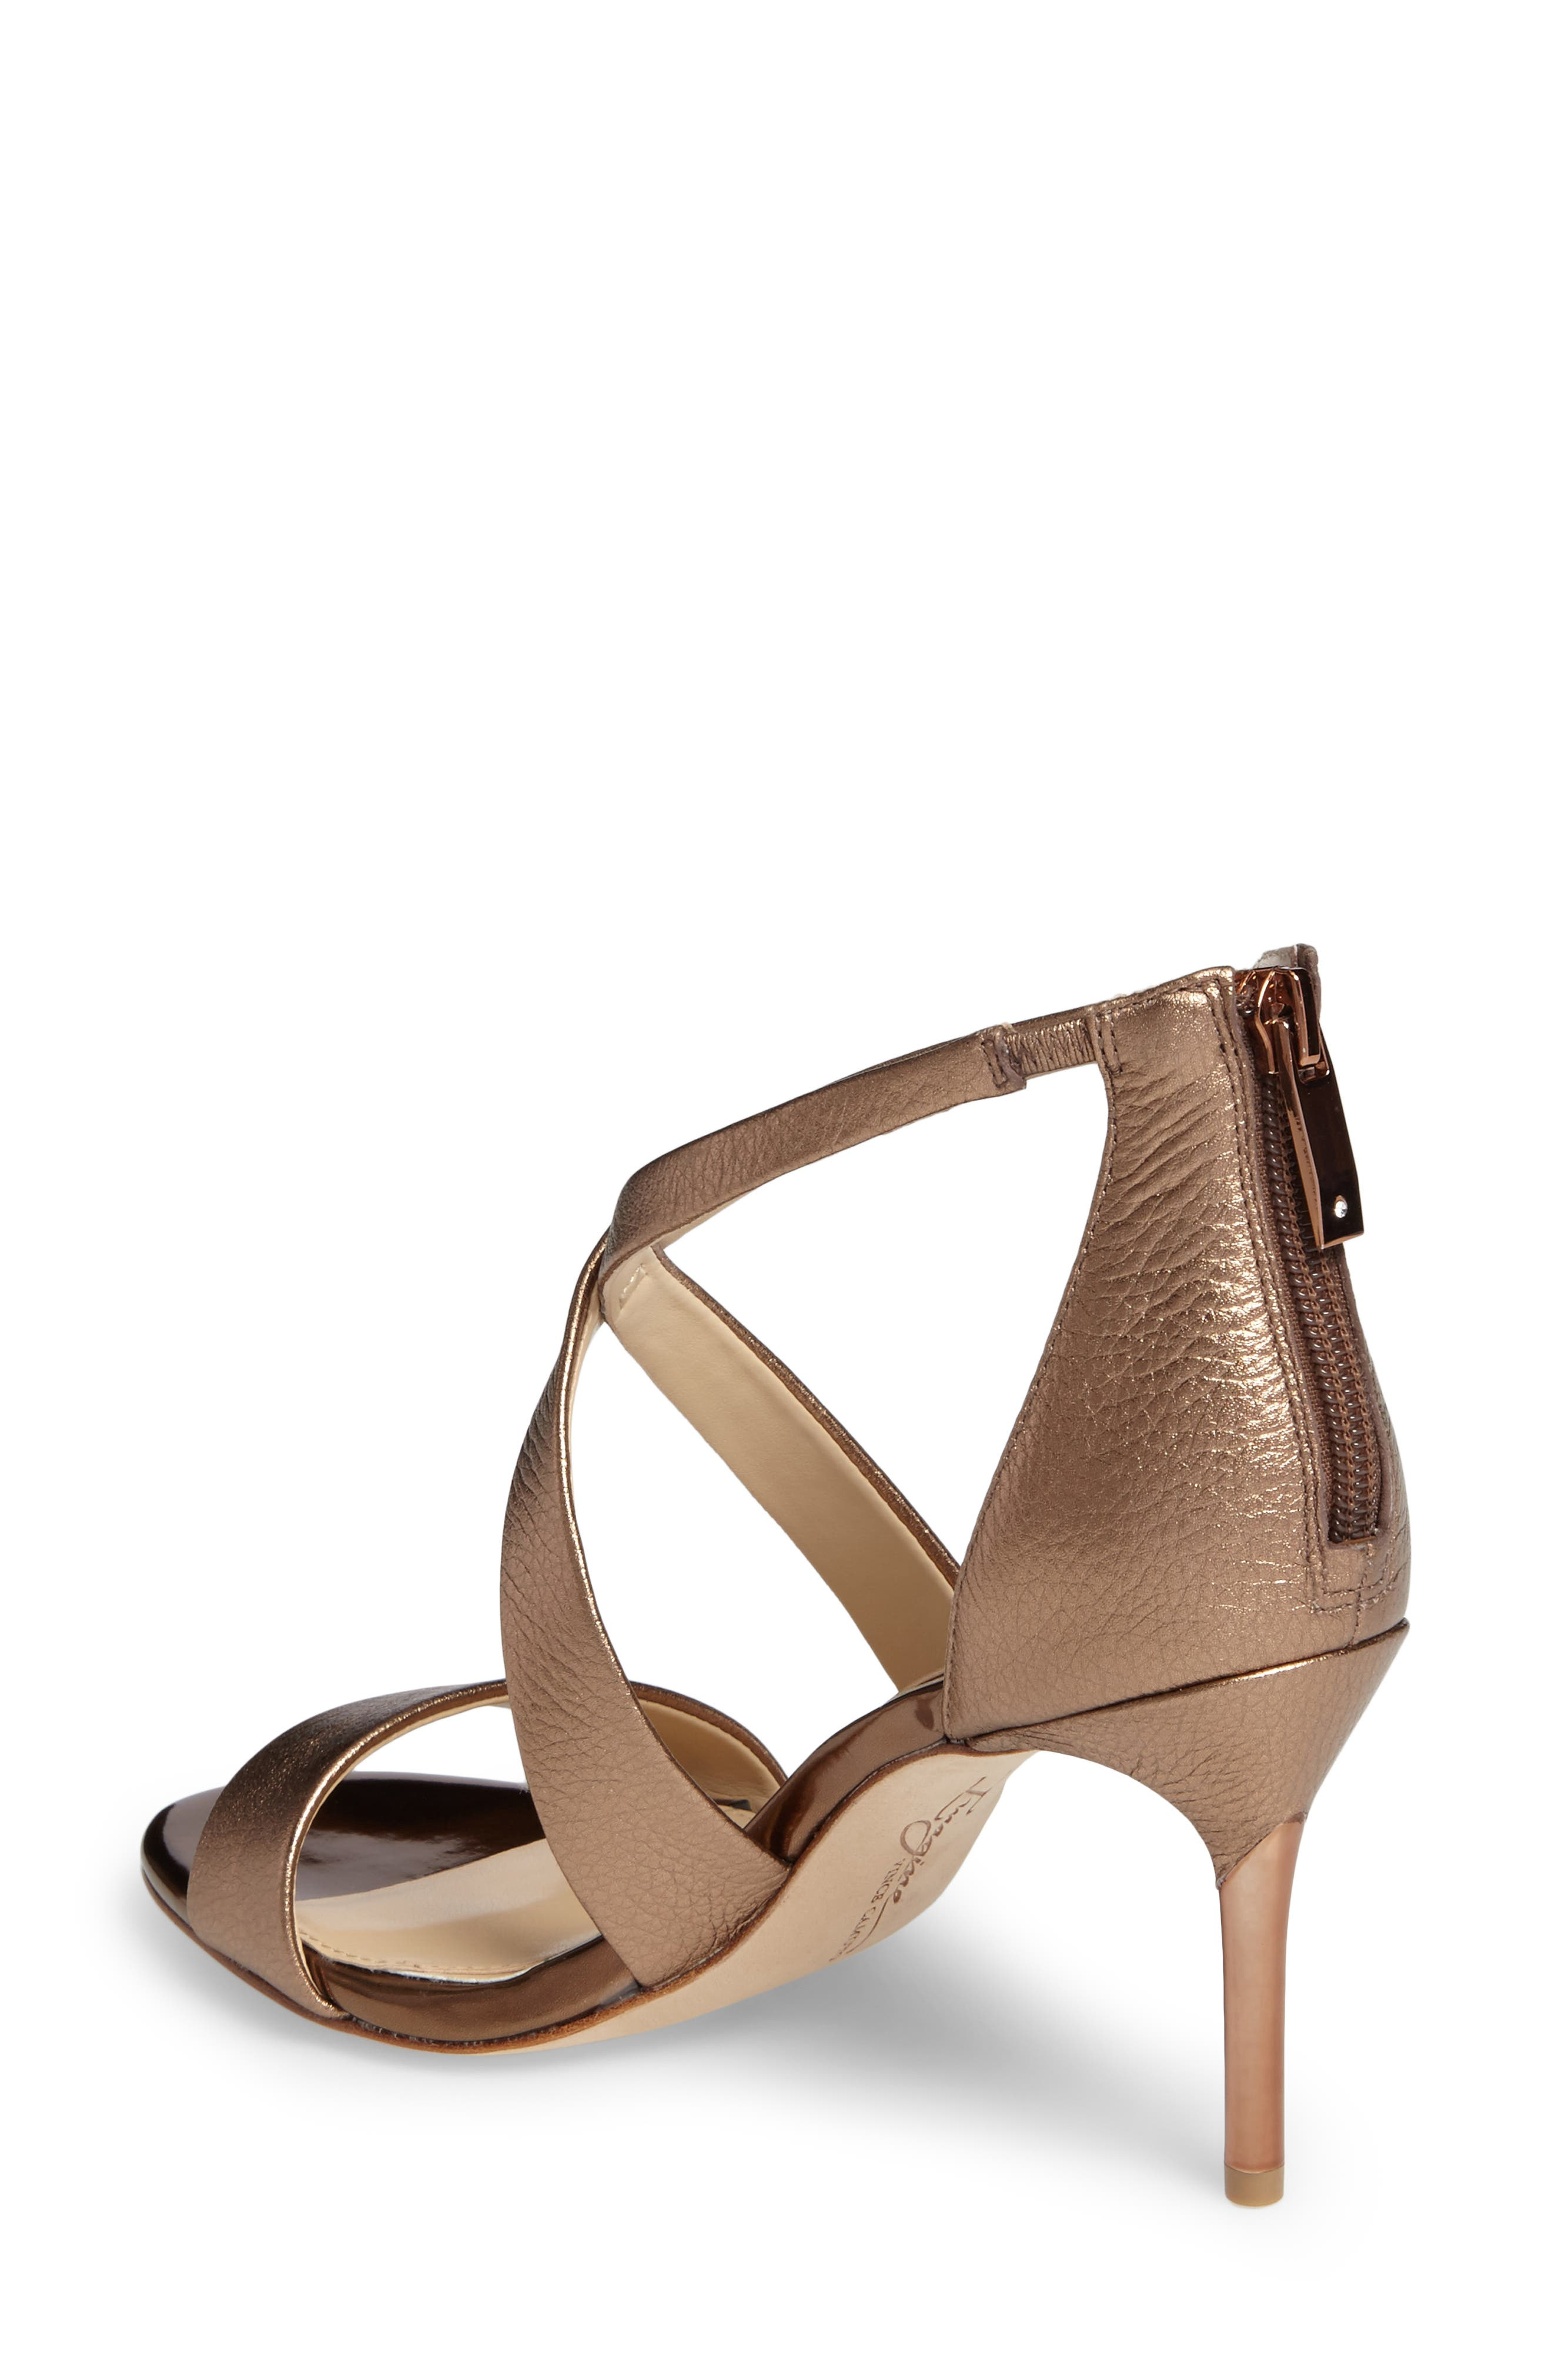 'Pascal 2' Strappy Evening Sandal,                             Alternate thumbnail 2, color,                             Copper Leather